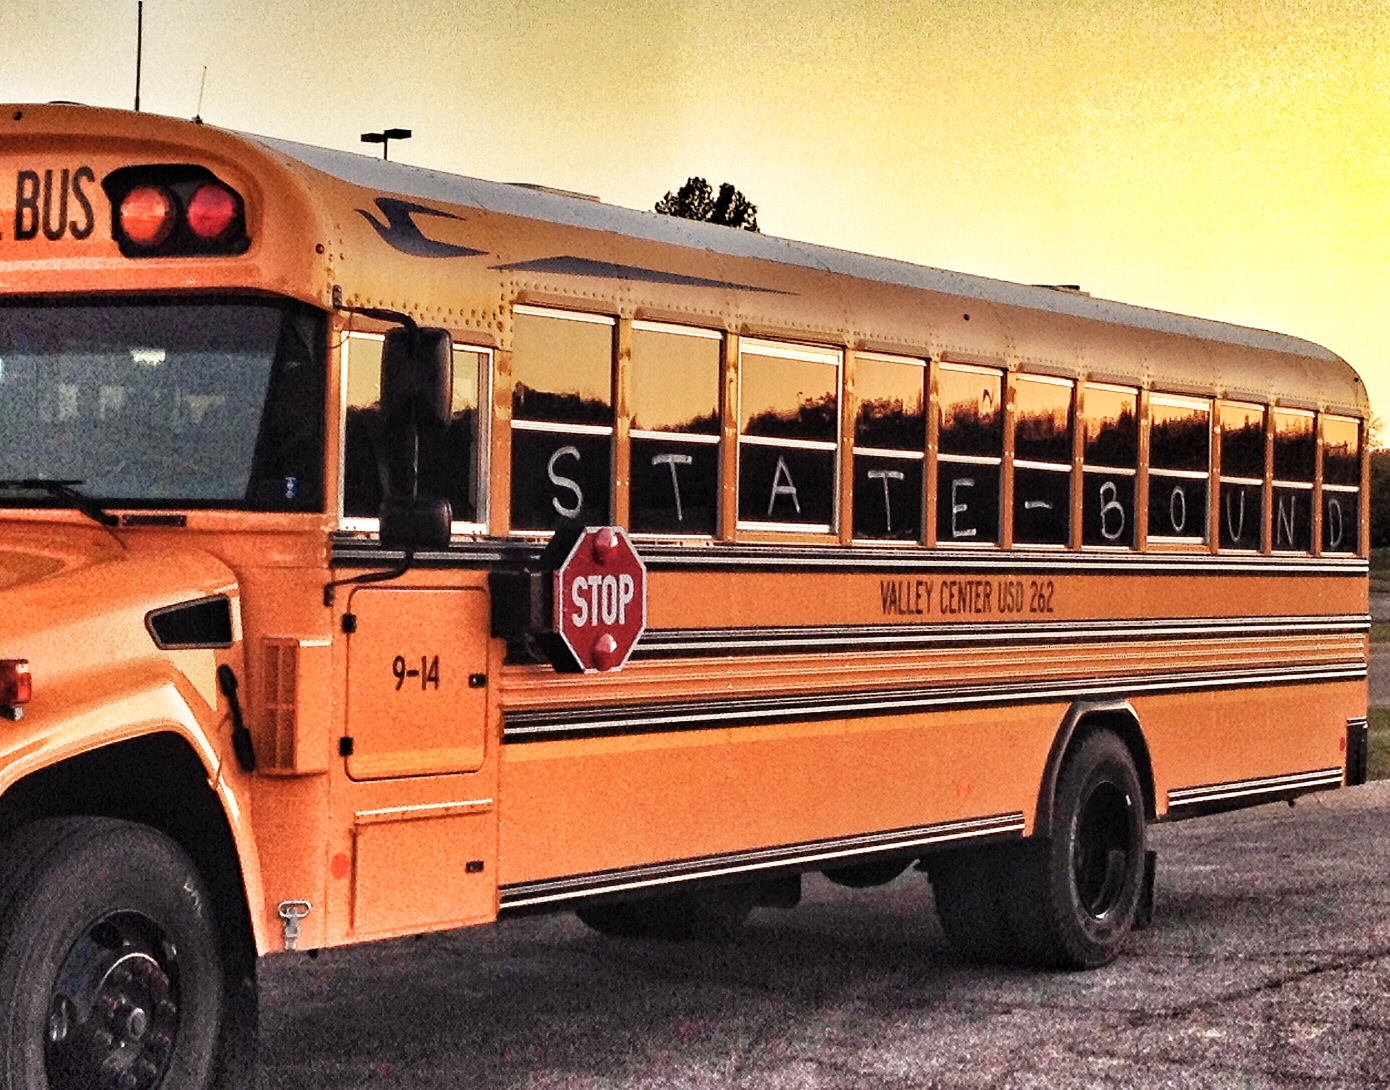 This is a typical Kansas school bus; this one carried the Valley Center volleyball team to the state tournament in Topeka in 2014.  It's simply used here for illustrative purposes, to represent education. (Photo by J. Schafer)